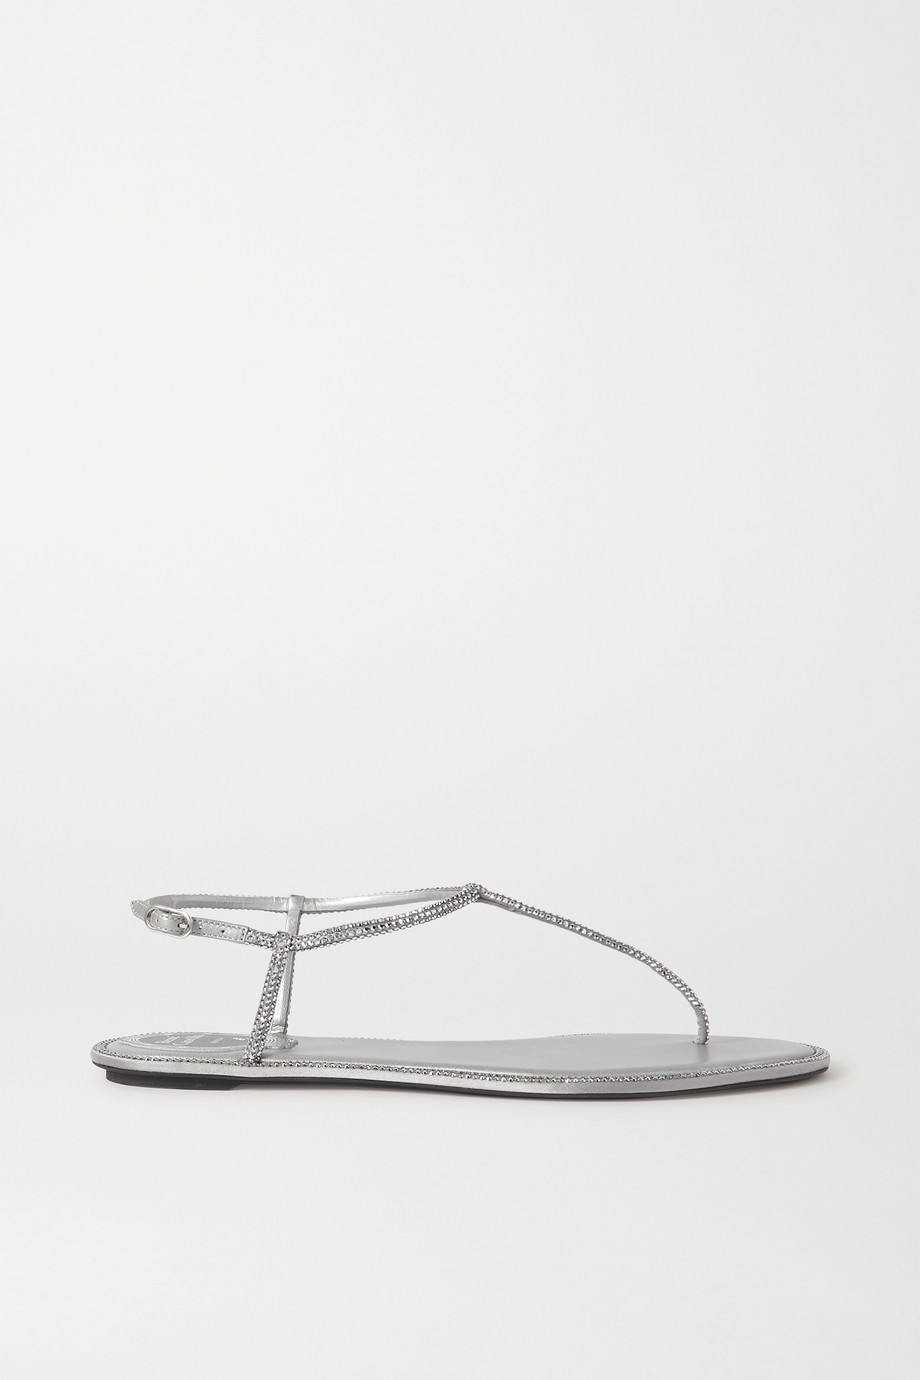 René Caovilla Diana crystal-embellished metallic leather sandals